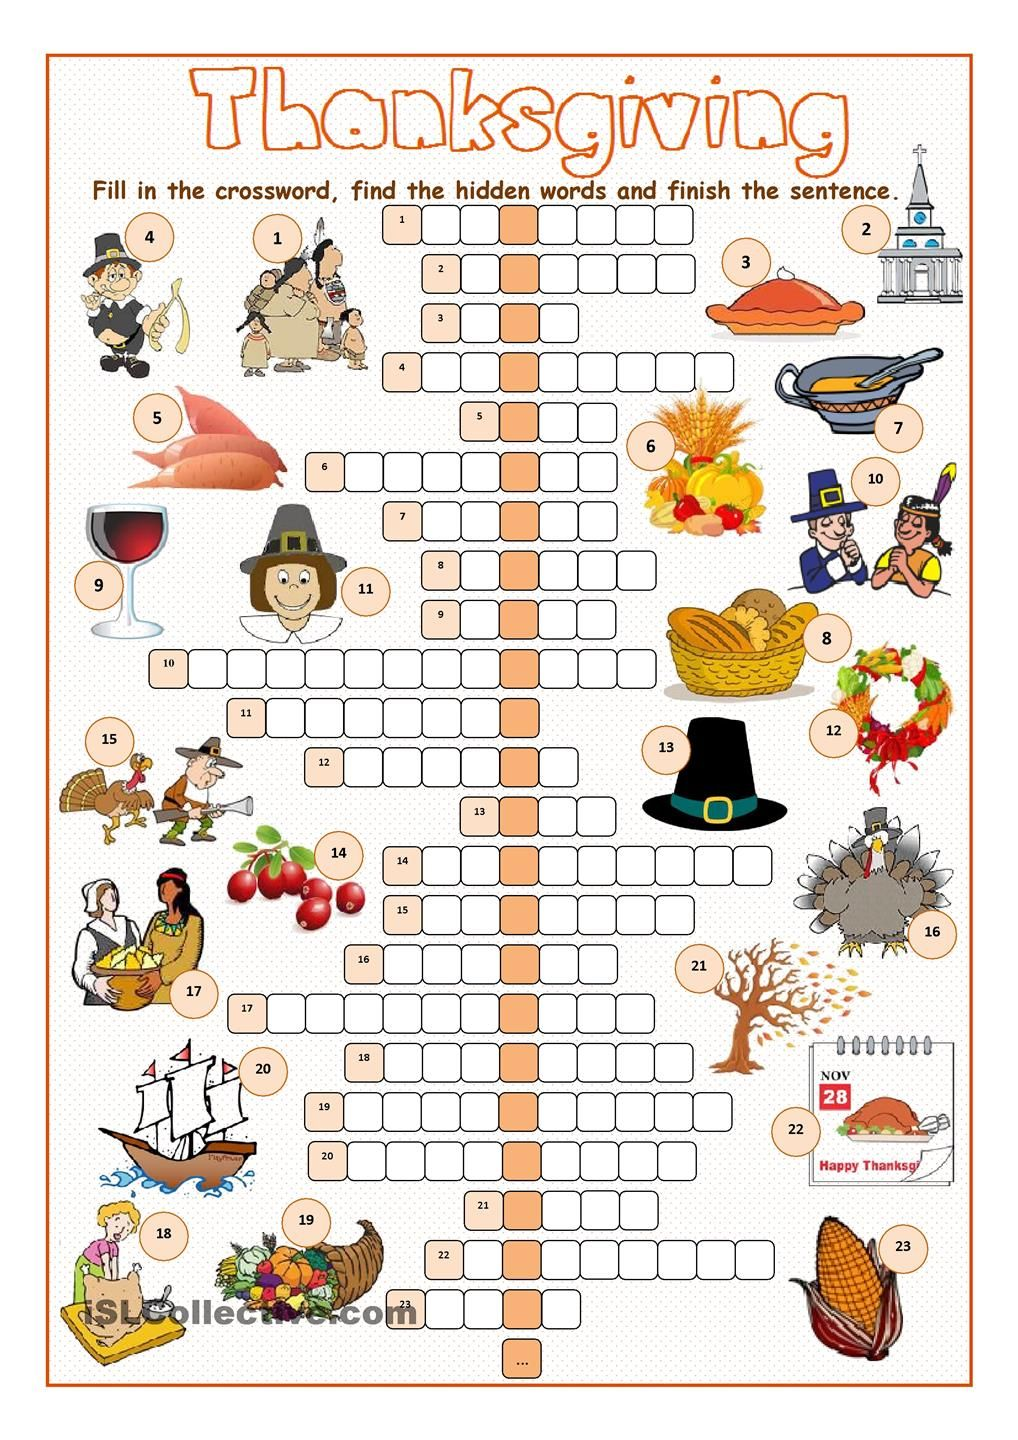 Thanksgiving Crossword Puzzle | THANKSGIVING | Pinterest | Englisch ...